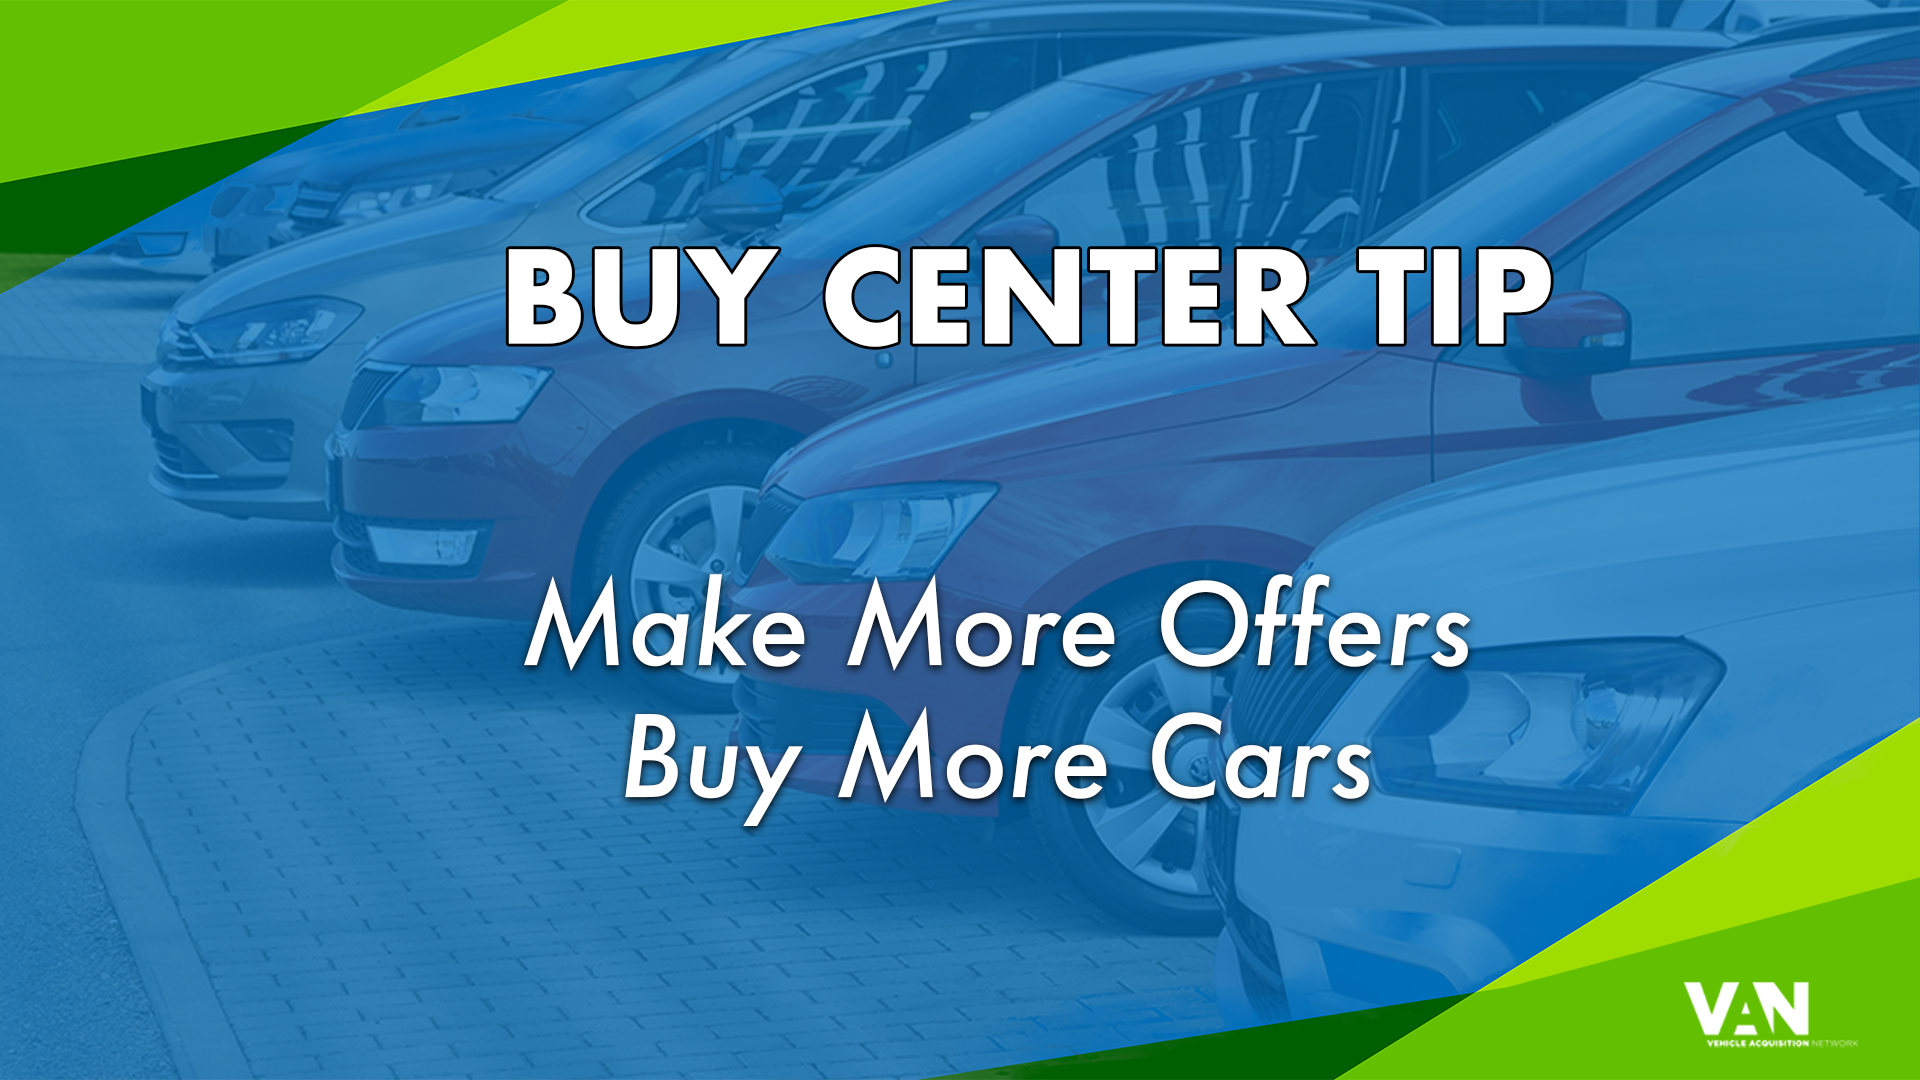 Buy Center Tip: Make More Offers, Buy More Cars